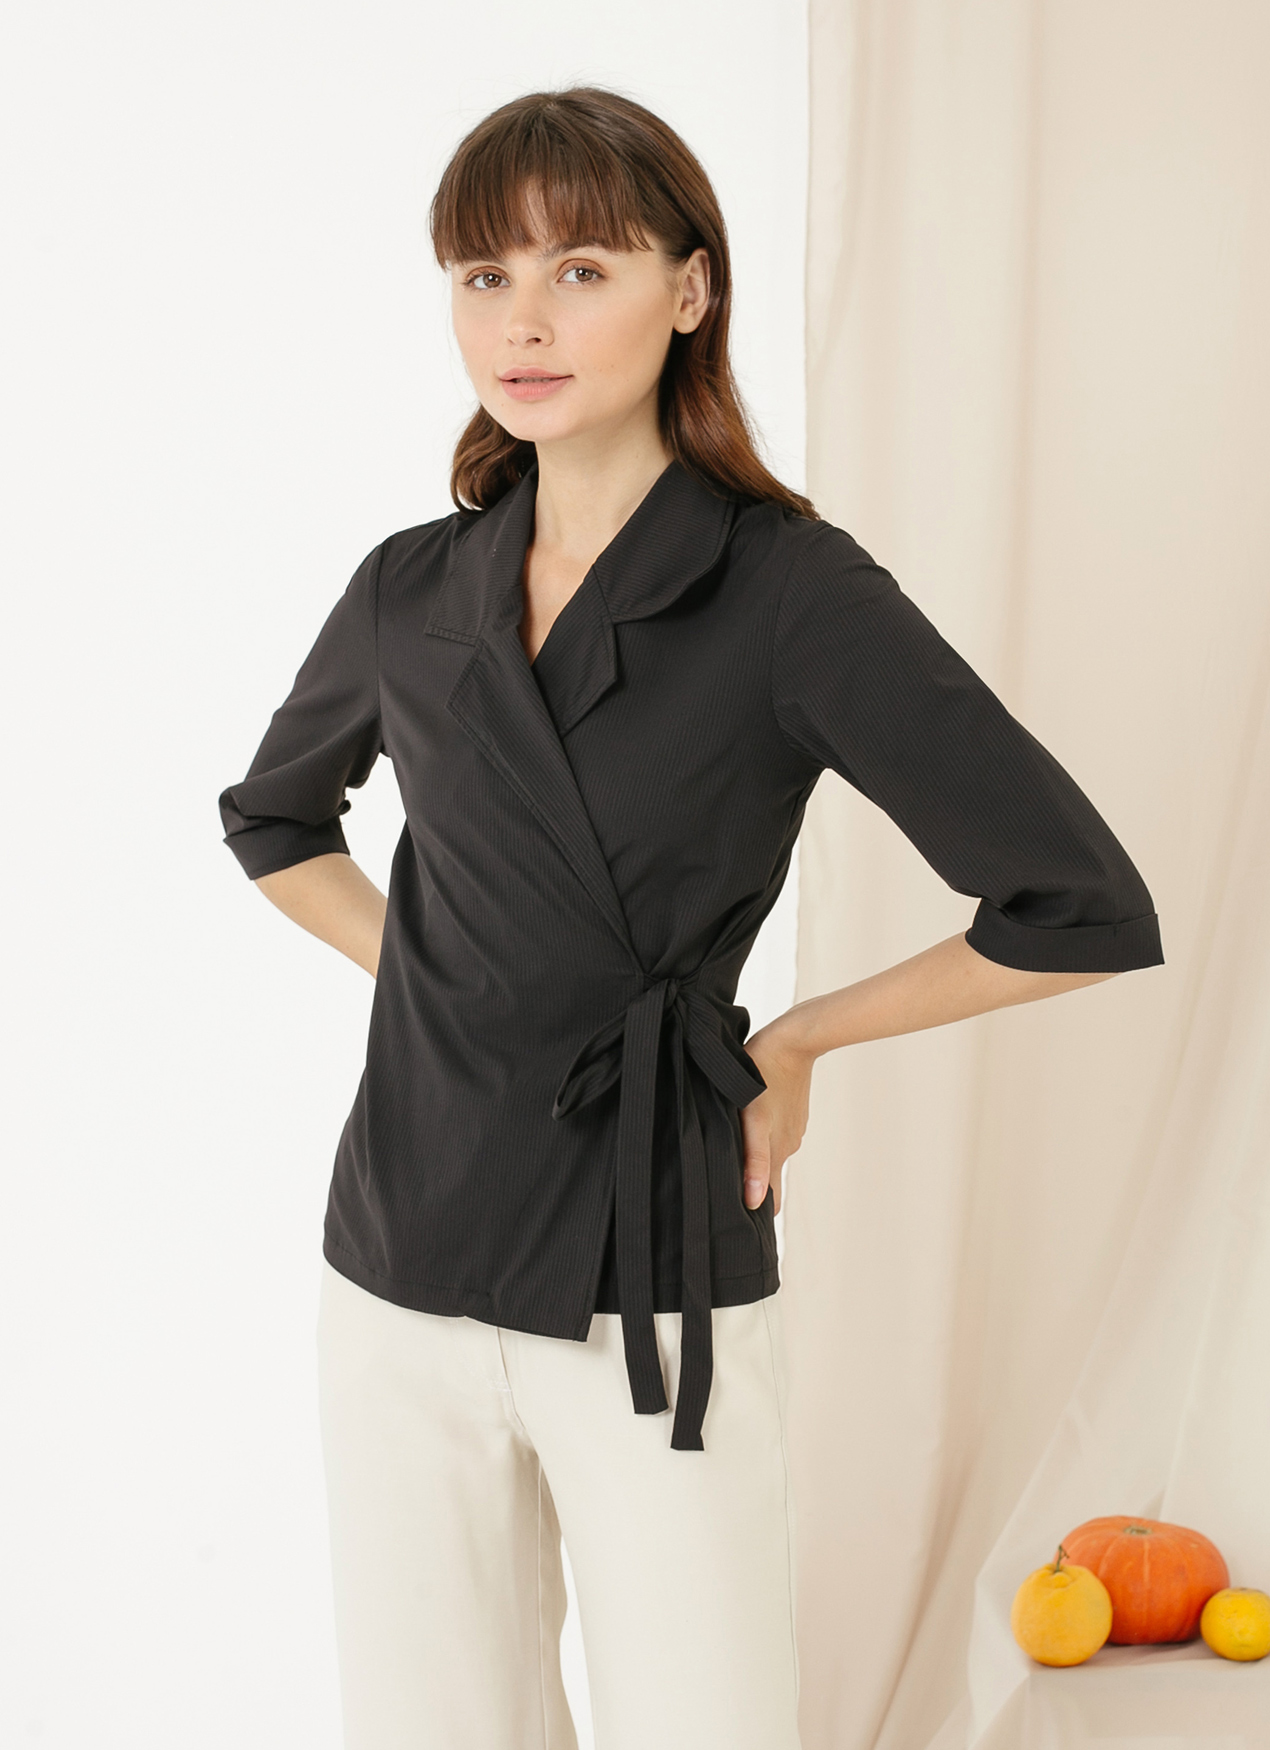 CLOTH INC Terry Kimono Tied Top - Black Stripe